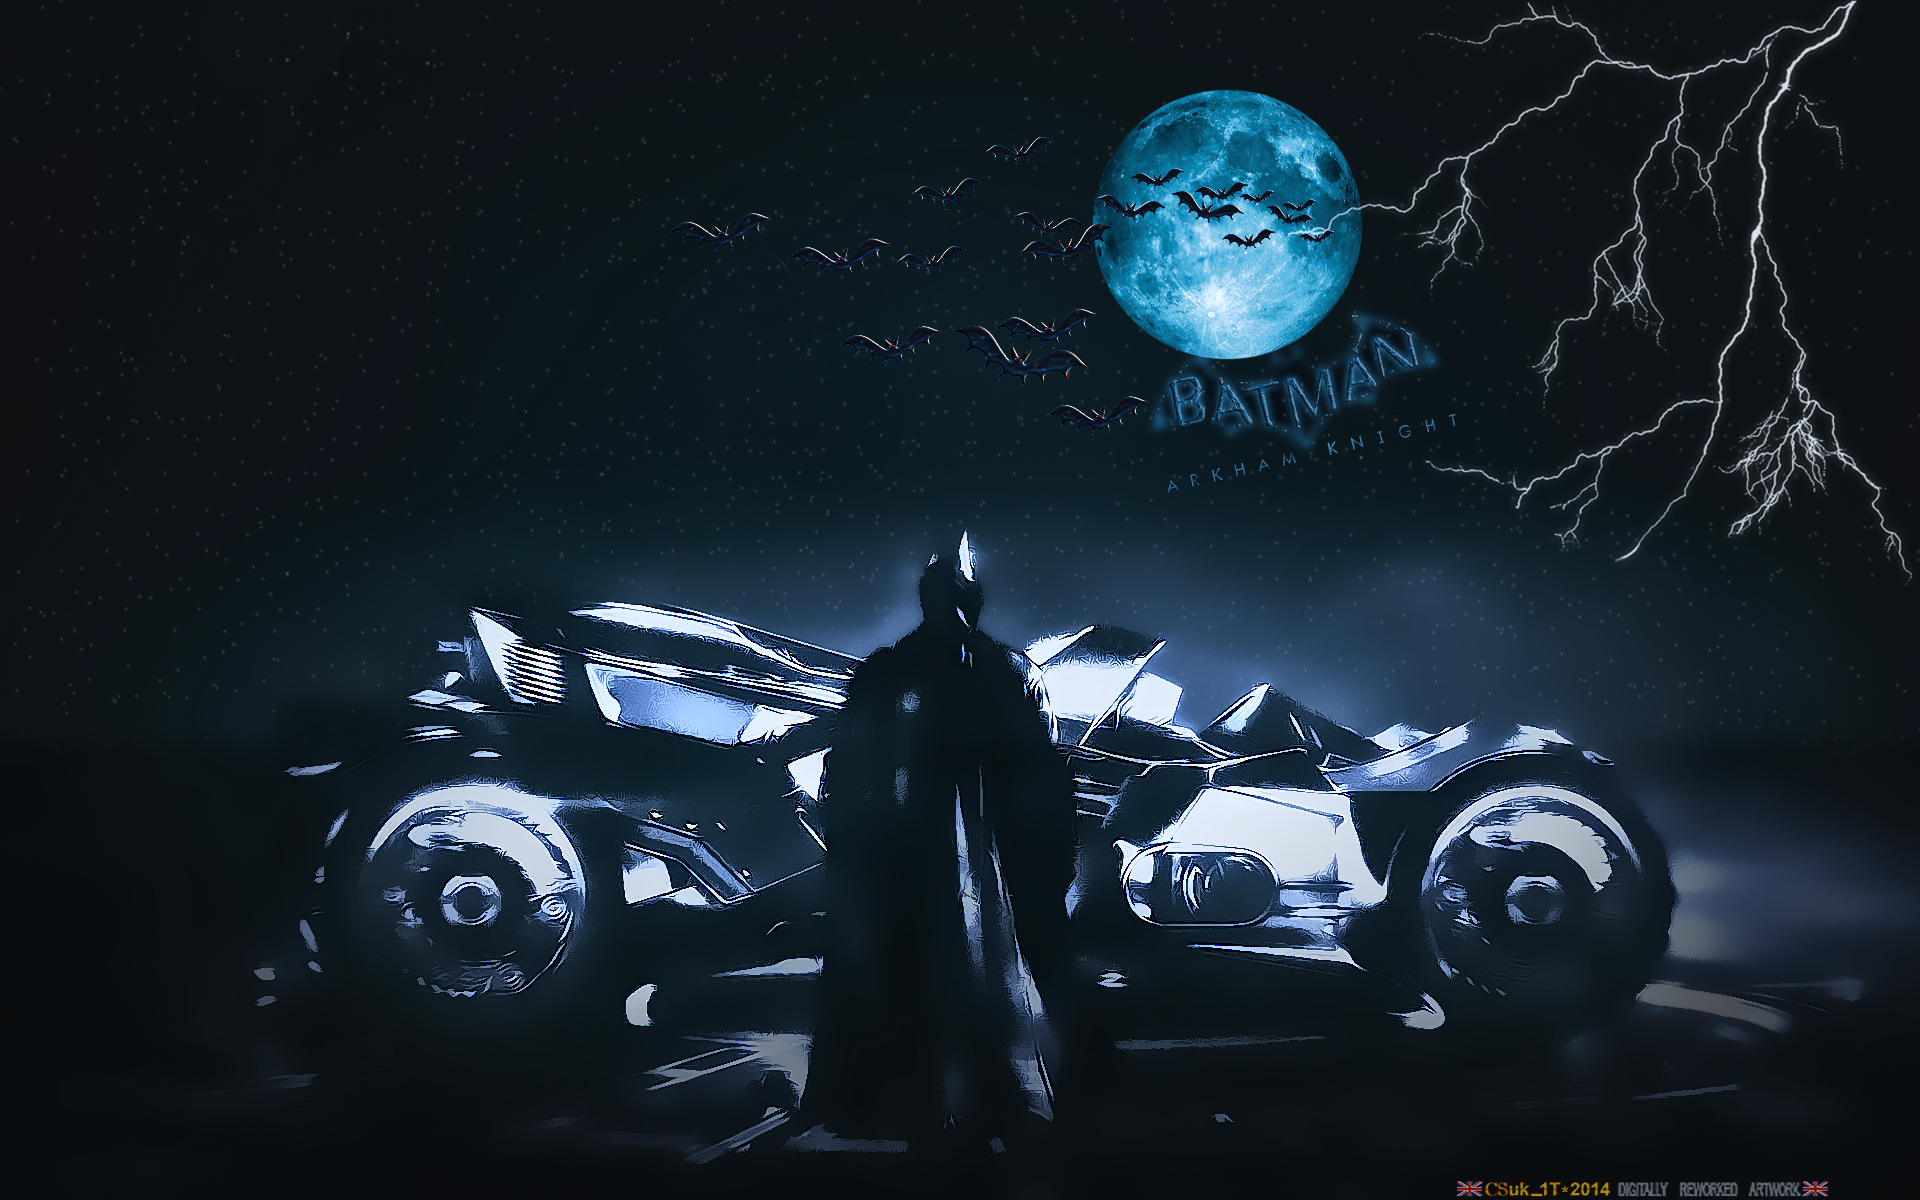 BATMAN: ARKHAM KNIGHT BATMOBILE (2) by CSuk-1T on DeviantArt